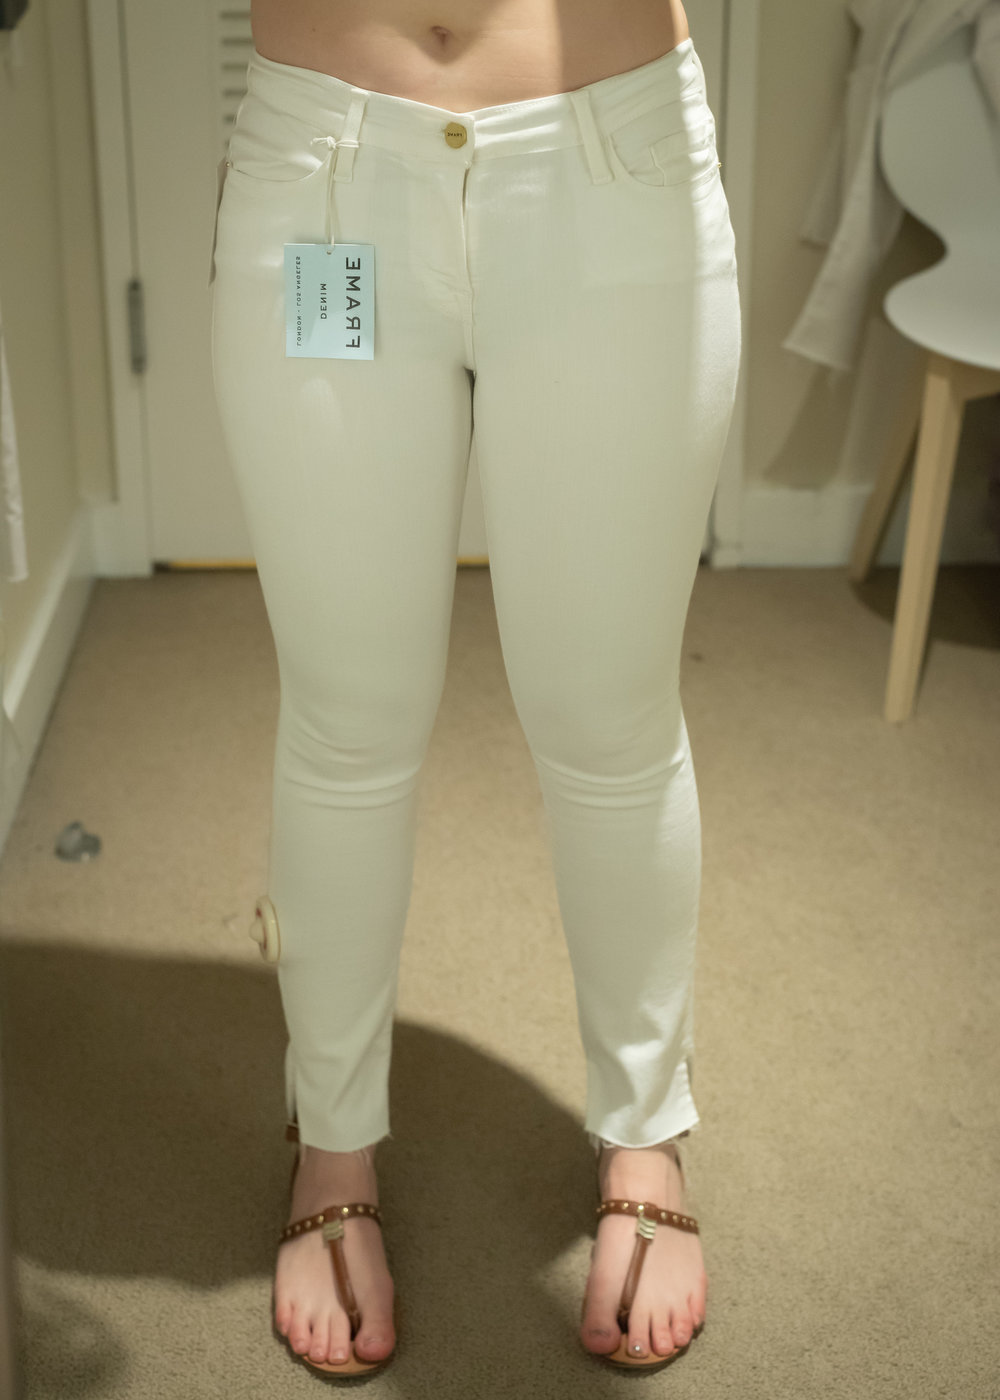 Frame Le Skinny Jeans - Size 28 - Front View